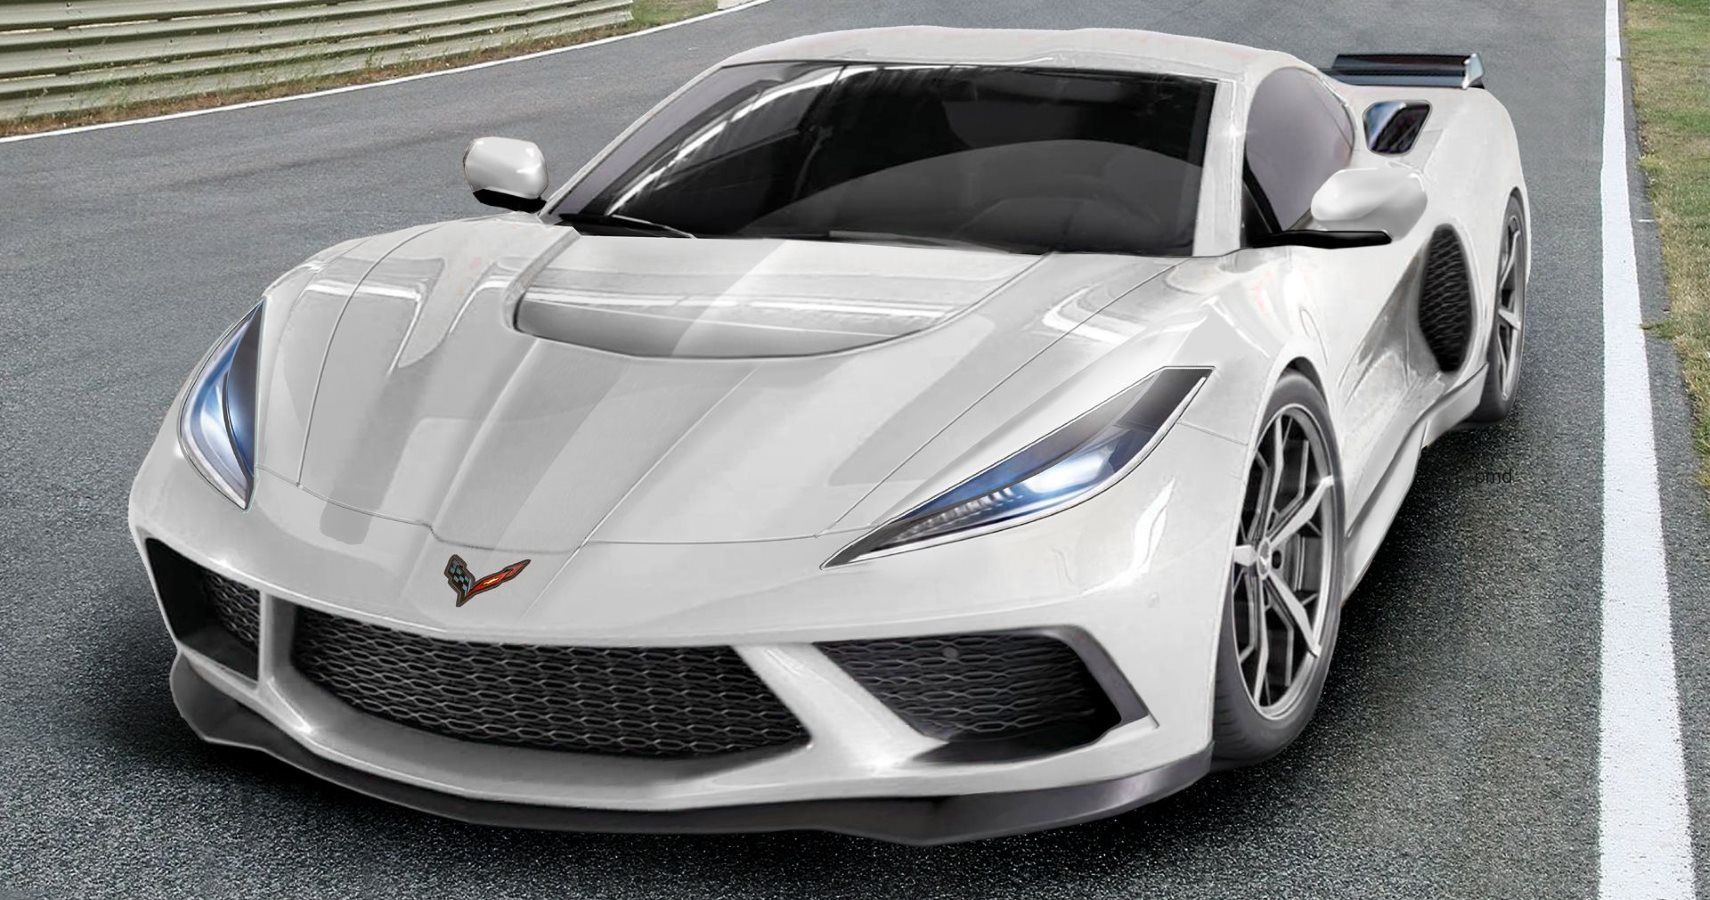 Mid-Engined Corvette Spotted In The Streets With Revealing Photos